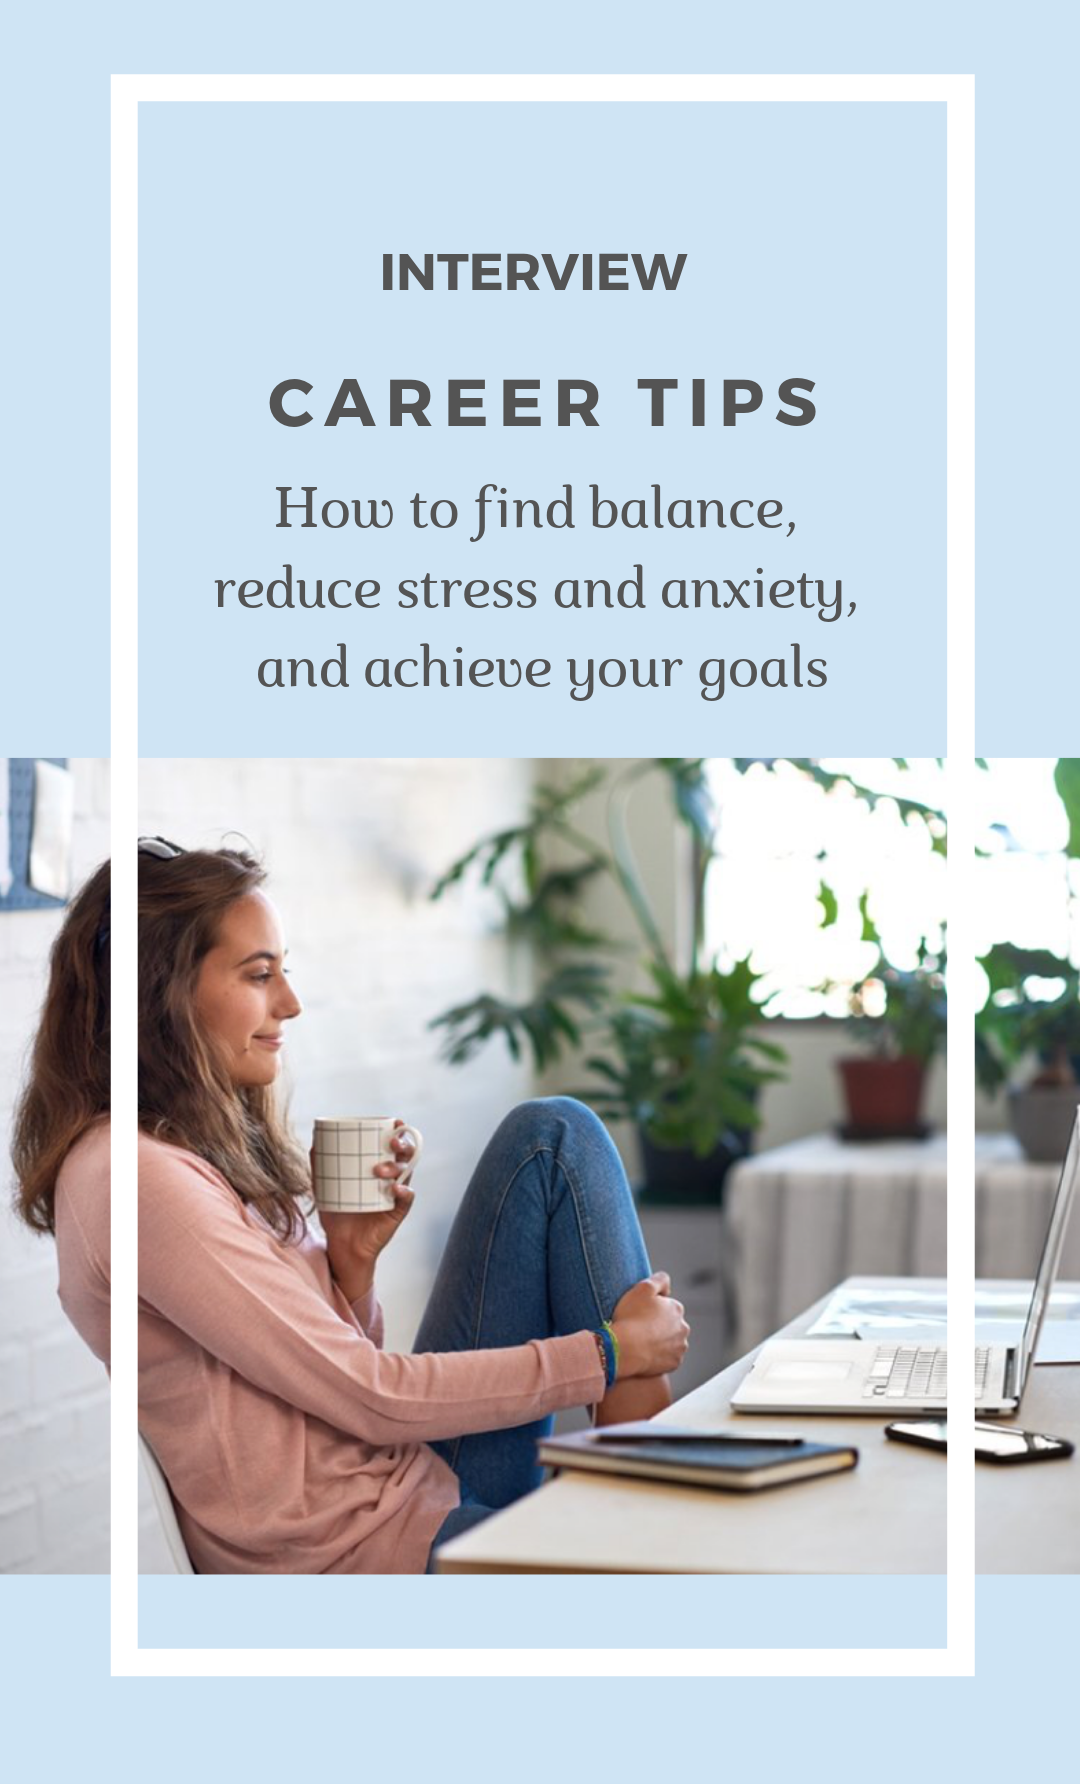 Career Tips:  How to find balance, reduce stress and anxiety, and achieve your goals